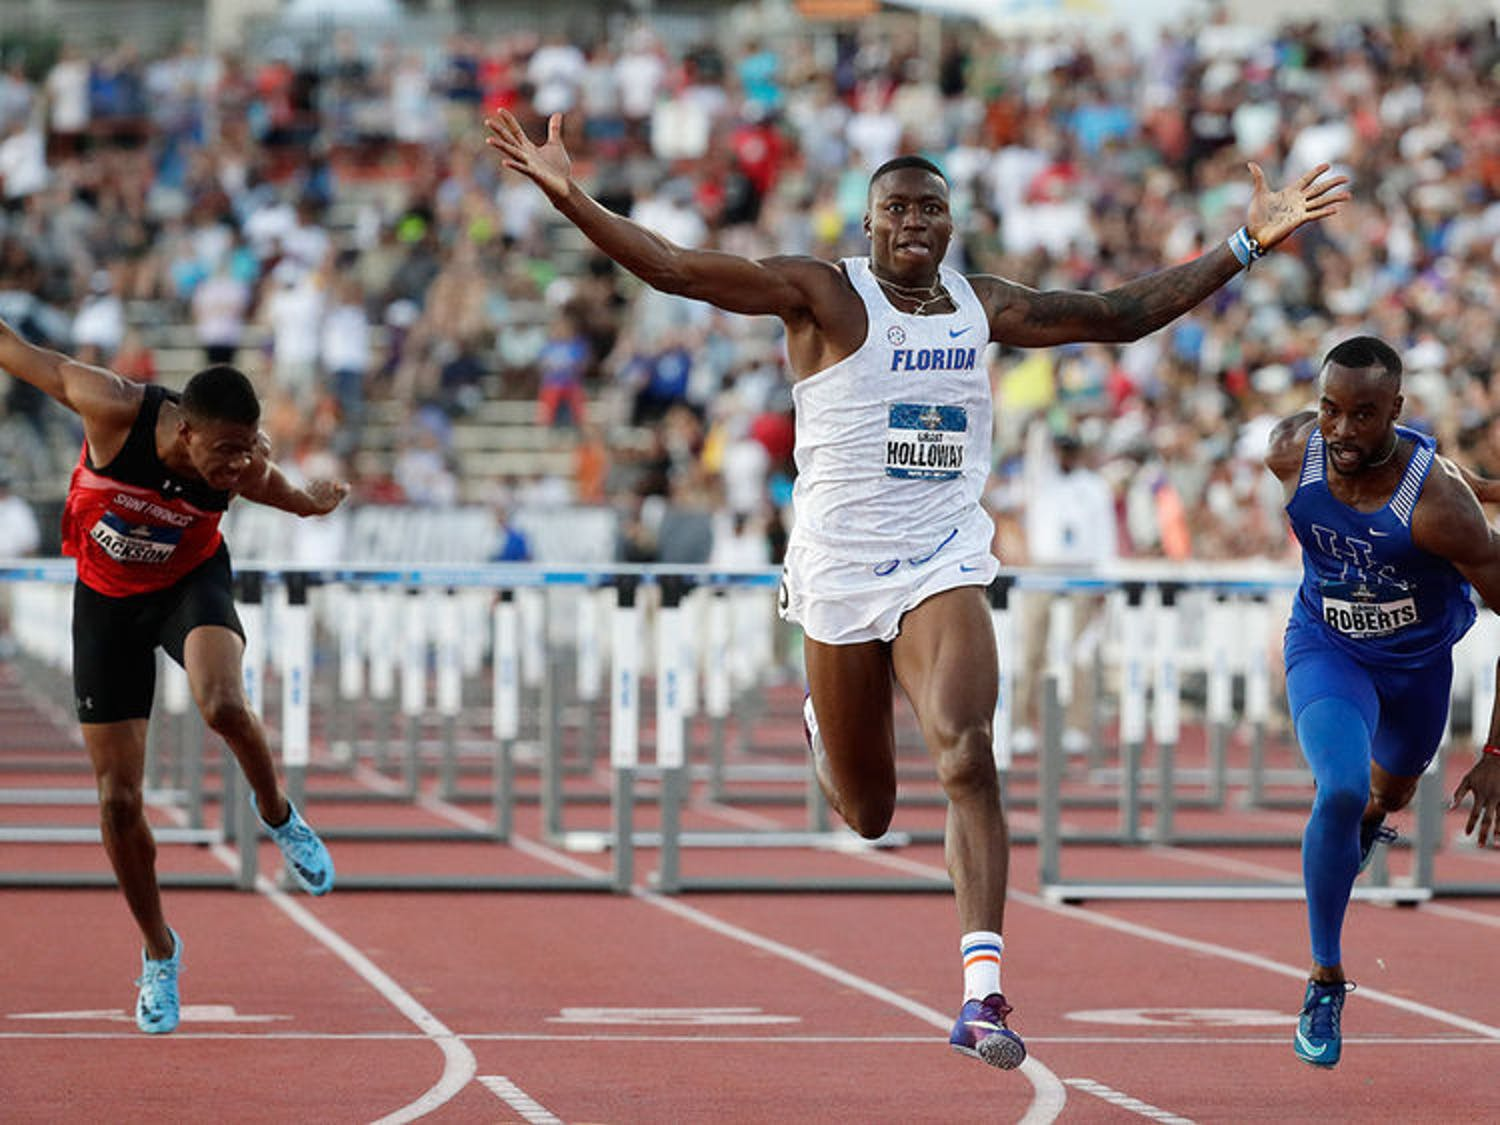 Grant Holloway won the final heat of the men's 110-meter hurdles Saturday to book his first ticket to the Olympic Games this summer in Tokyo.